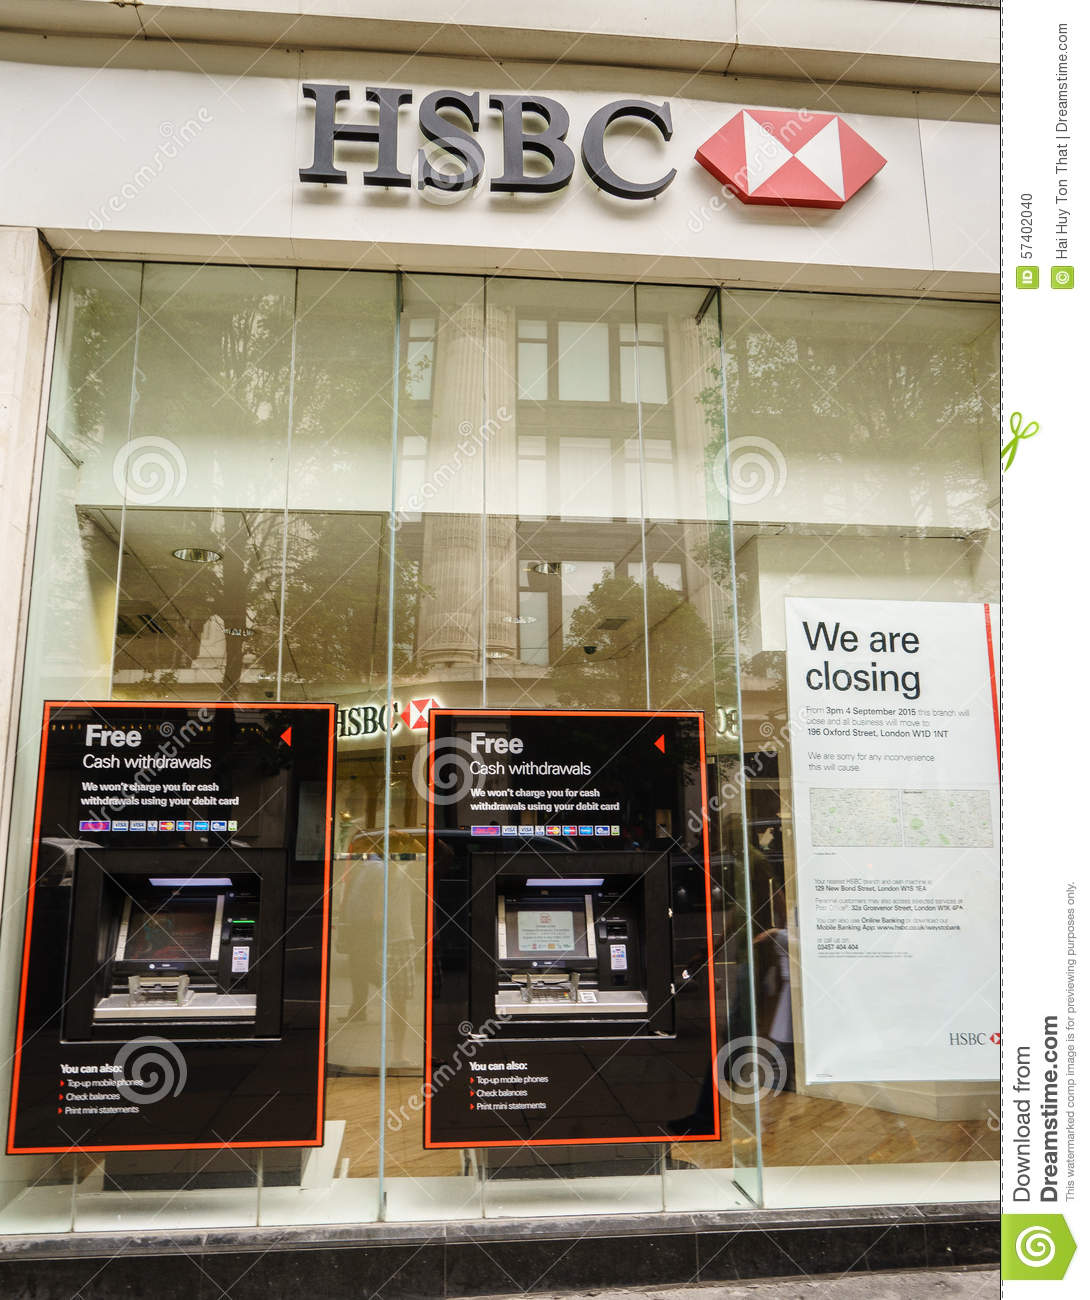 HSBC Bank branch in London editorial image  Image of